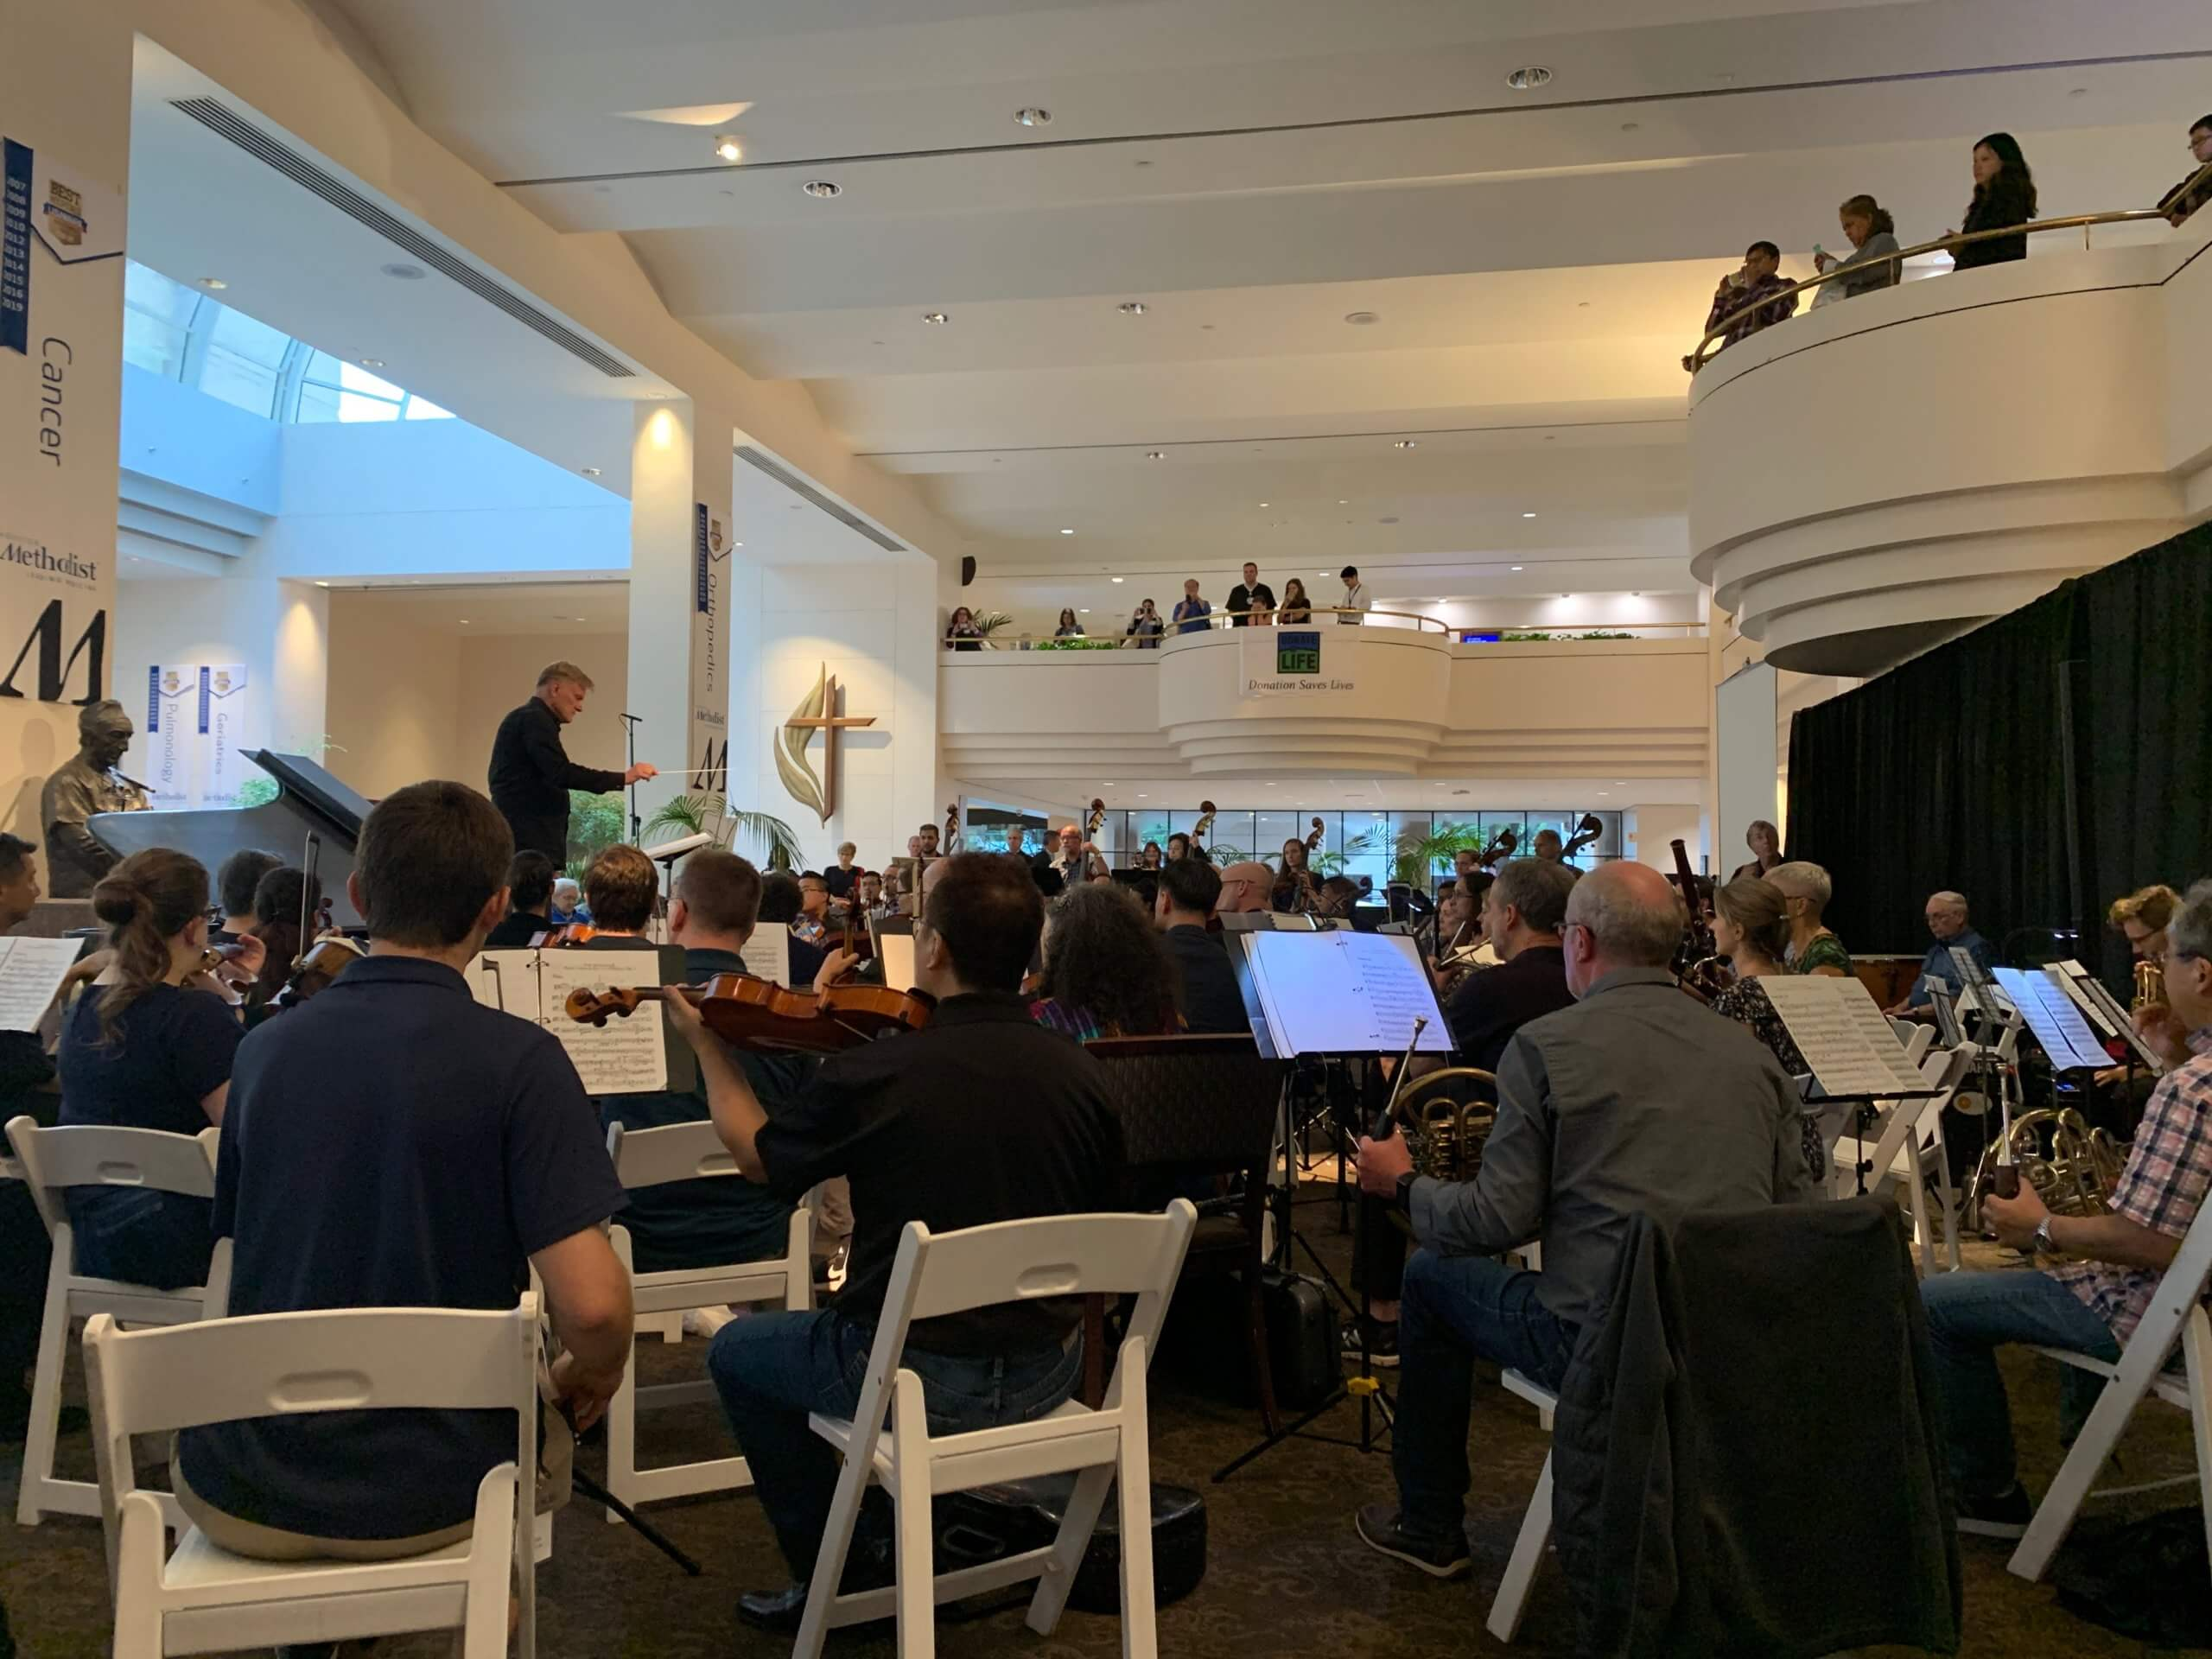 Houston Methodist patients and visitors filled Crain Garden to hear the physician-musicians perform.